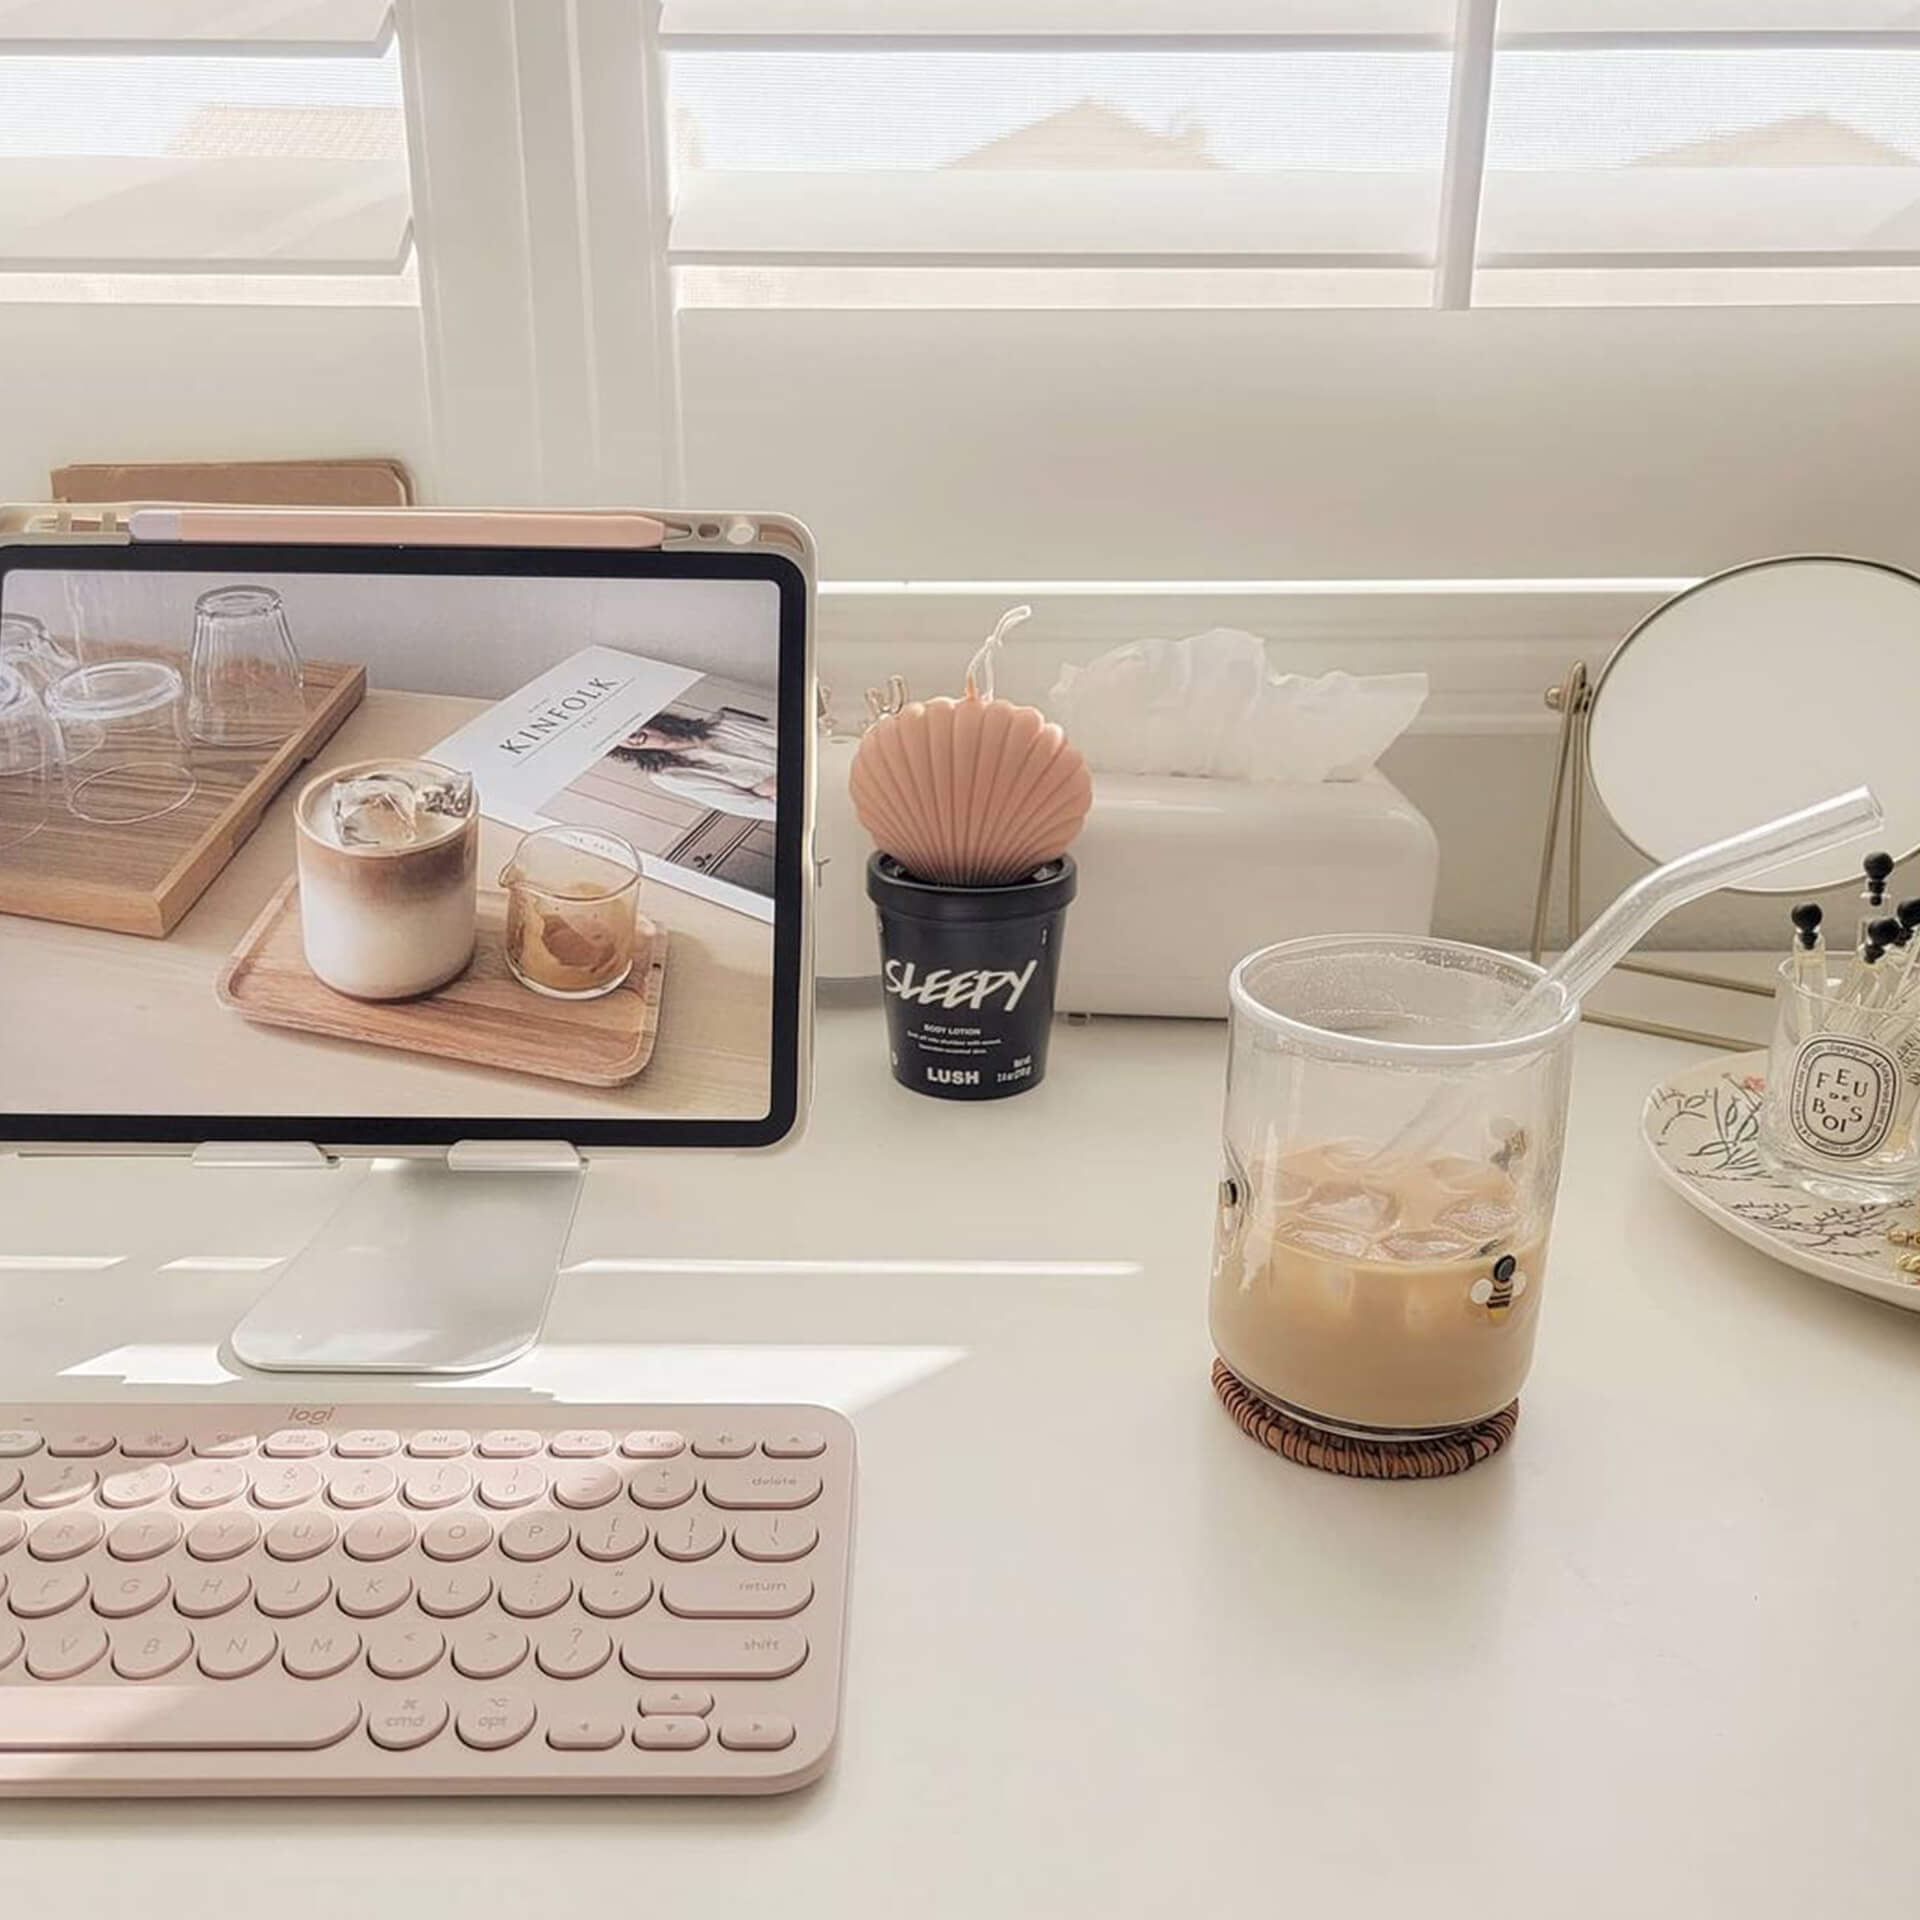 iPad Aesthetic Desk Setup